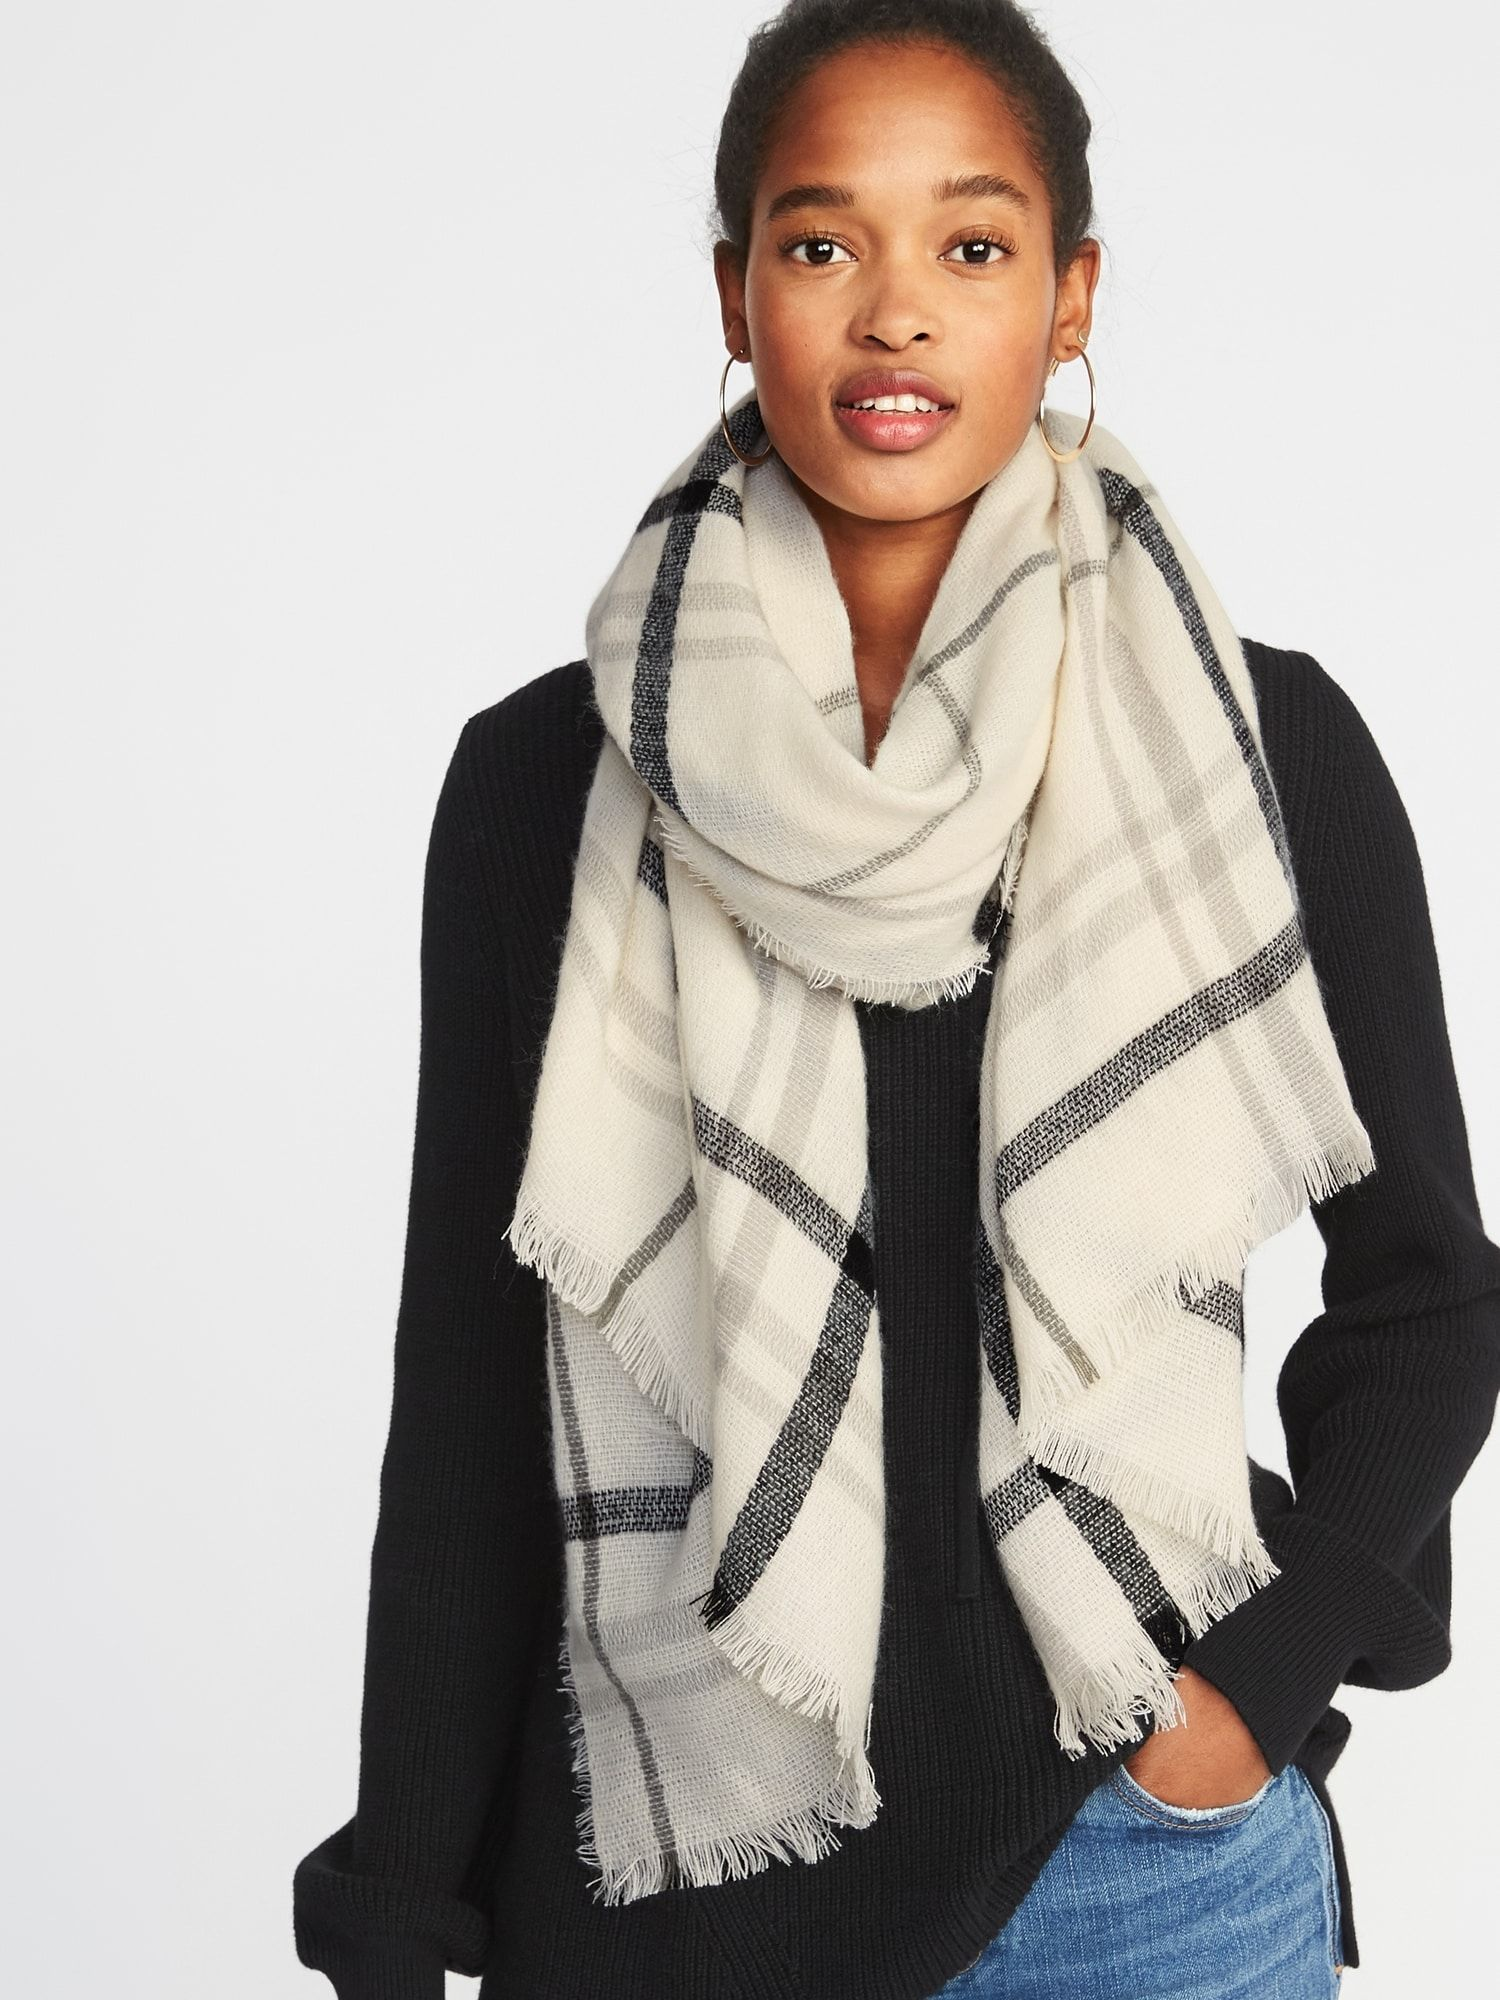 Flannel Blanket Scarf For Women Old Navy Womens Scarves Plaid